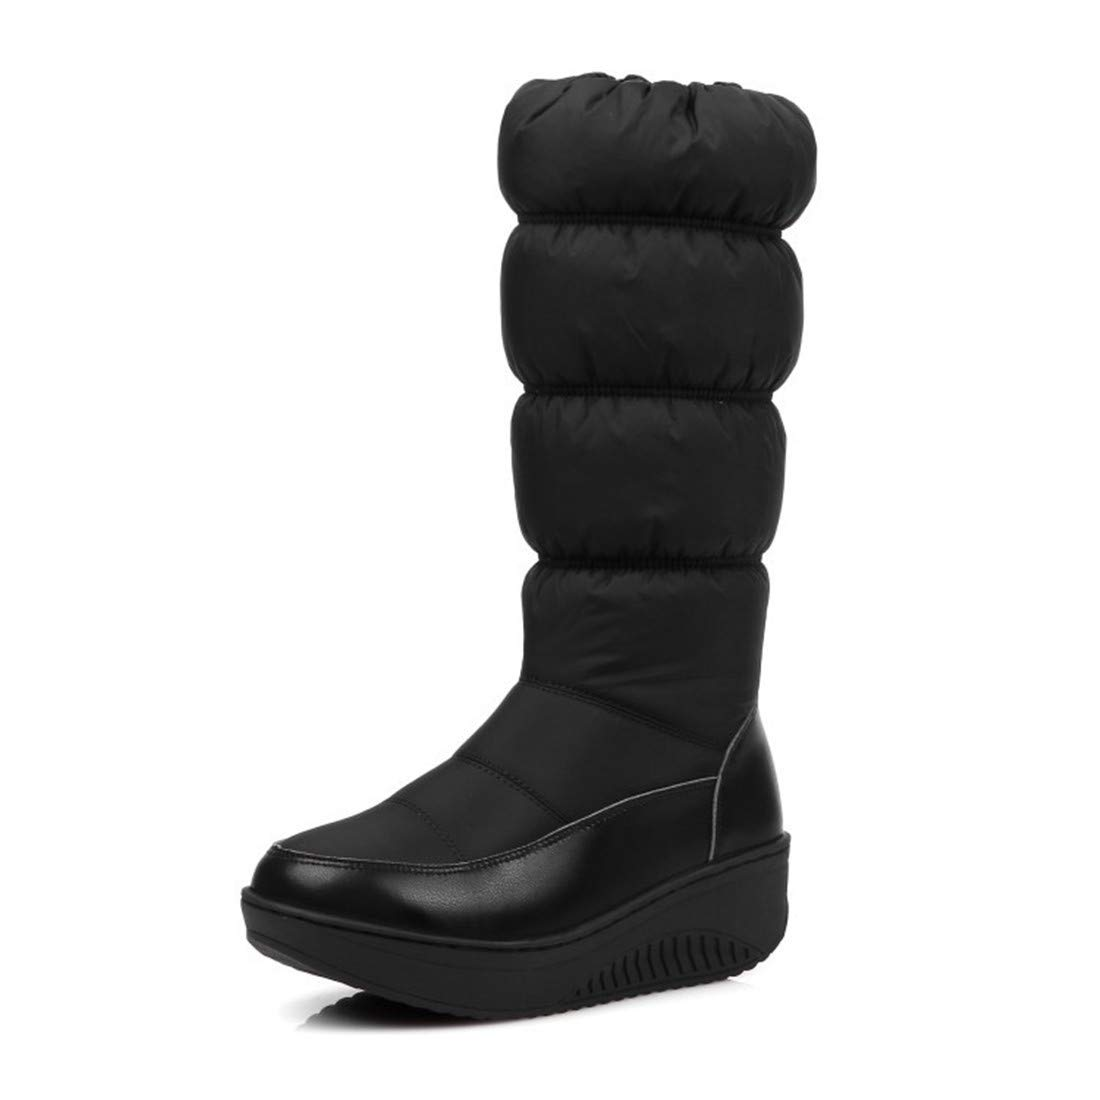 GCH Outdoor Schnee Stiefel Winter warm Plus SAMT